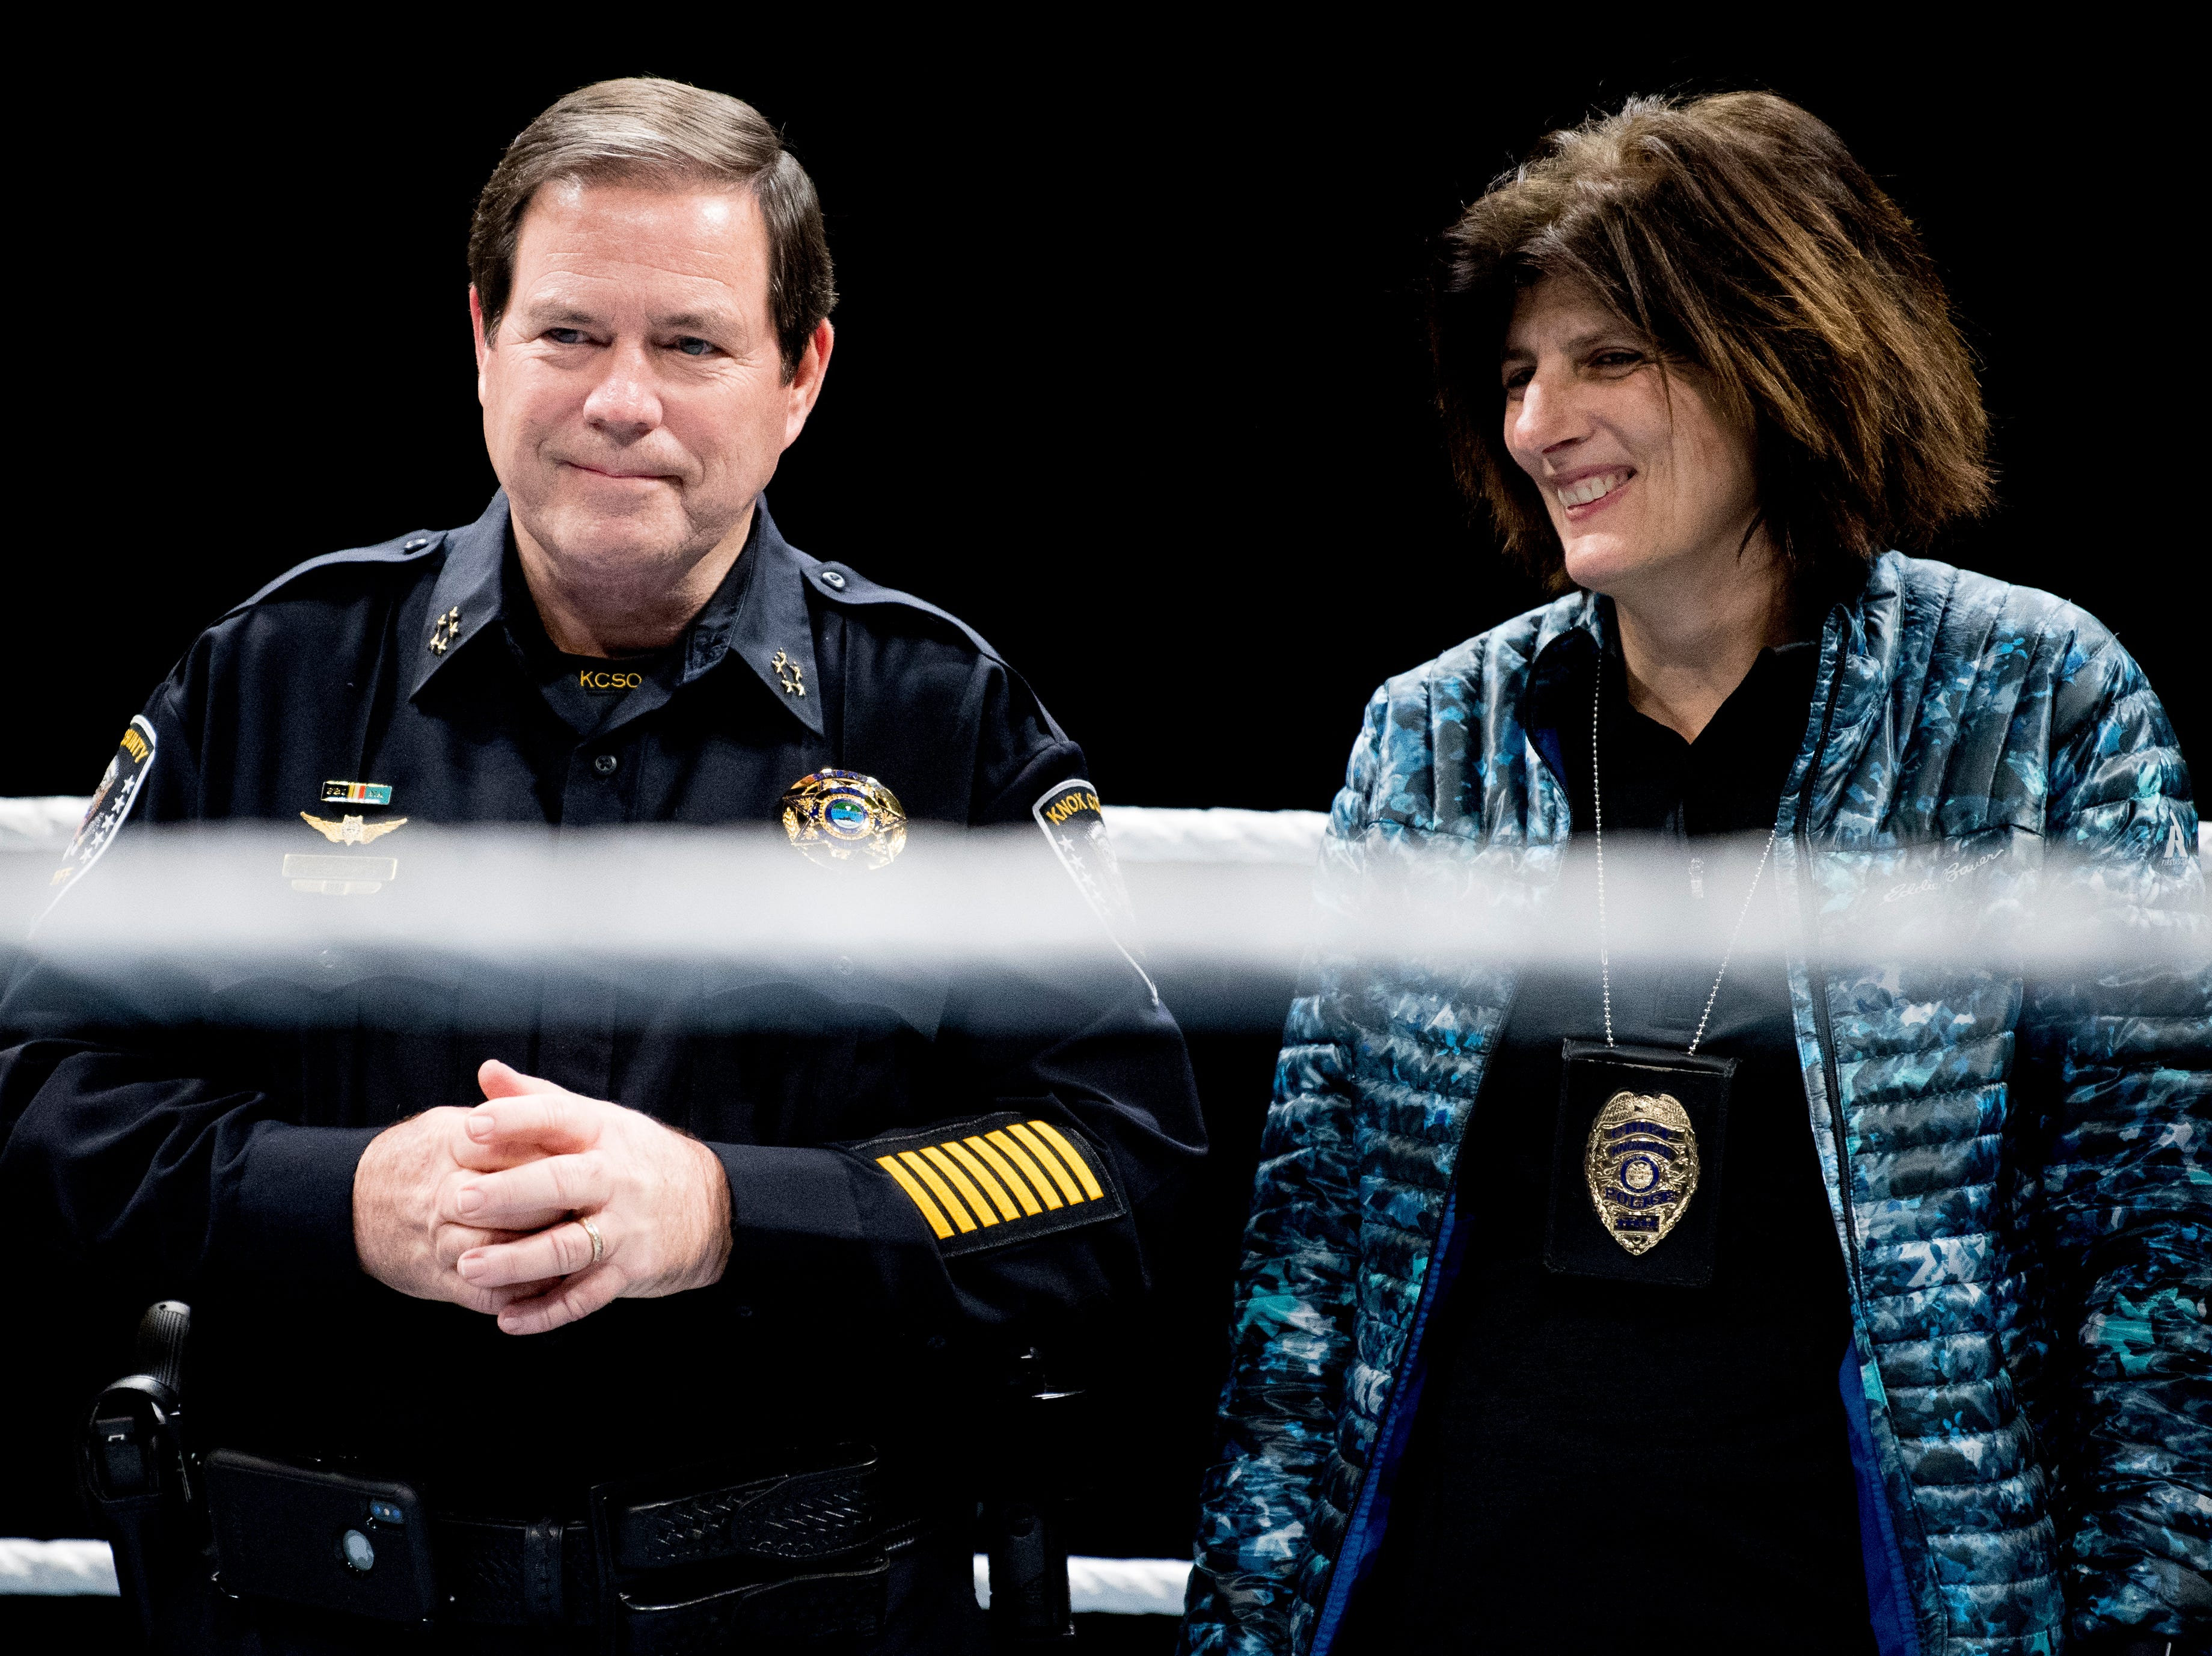 Knox County Sheriff Tom Spangler and Knoxville Chief of Police Eve Thomas stand in the wrestling ring together during a check presentation during a WWE Live performance at the Knoxville Civic Coliseum in Knoxville, Tennessee on Saturday, January 12, 2019. *KNOXVILLE NEWS SENTINEL USE ONLY*